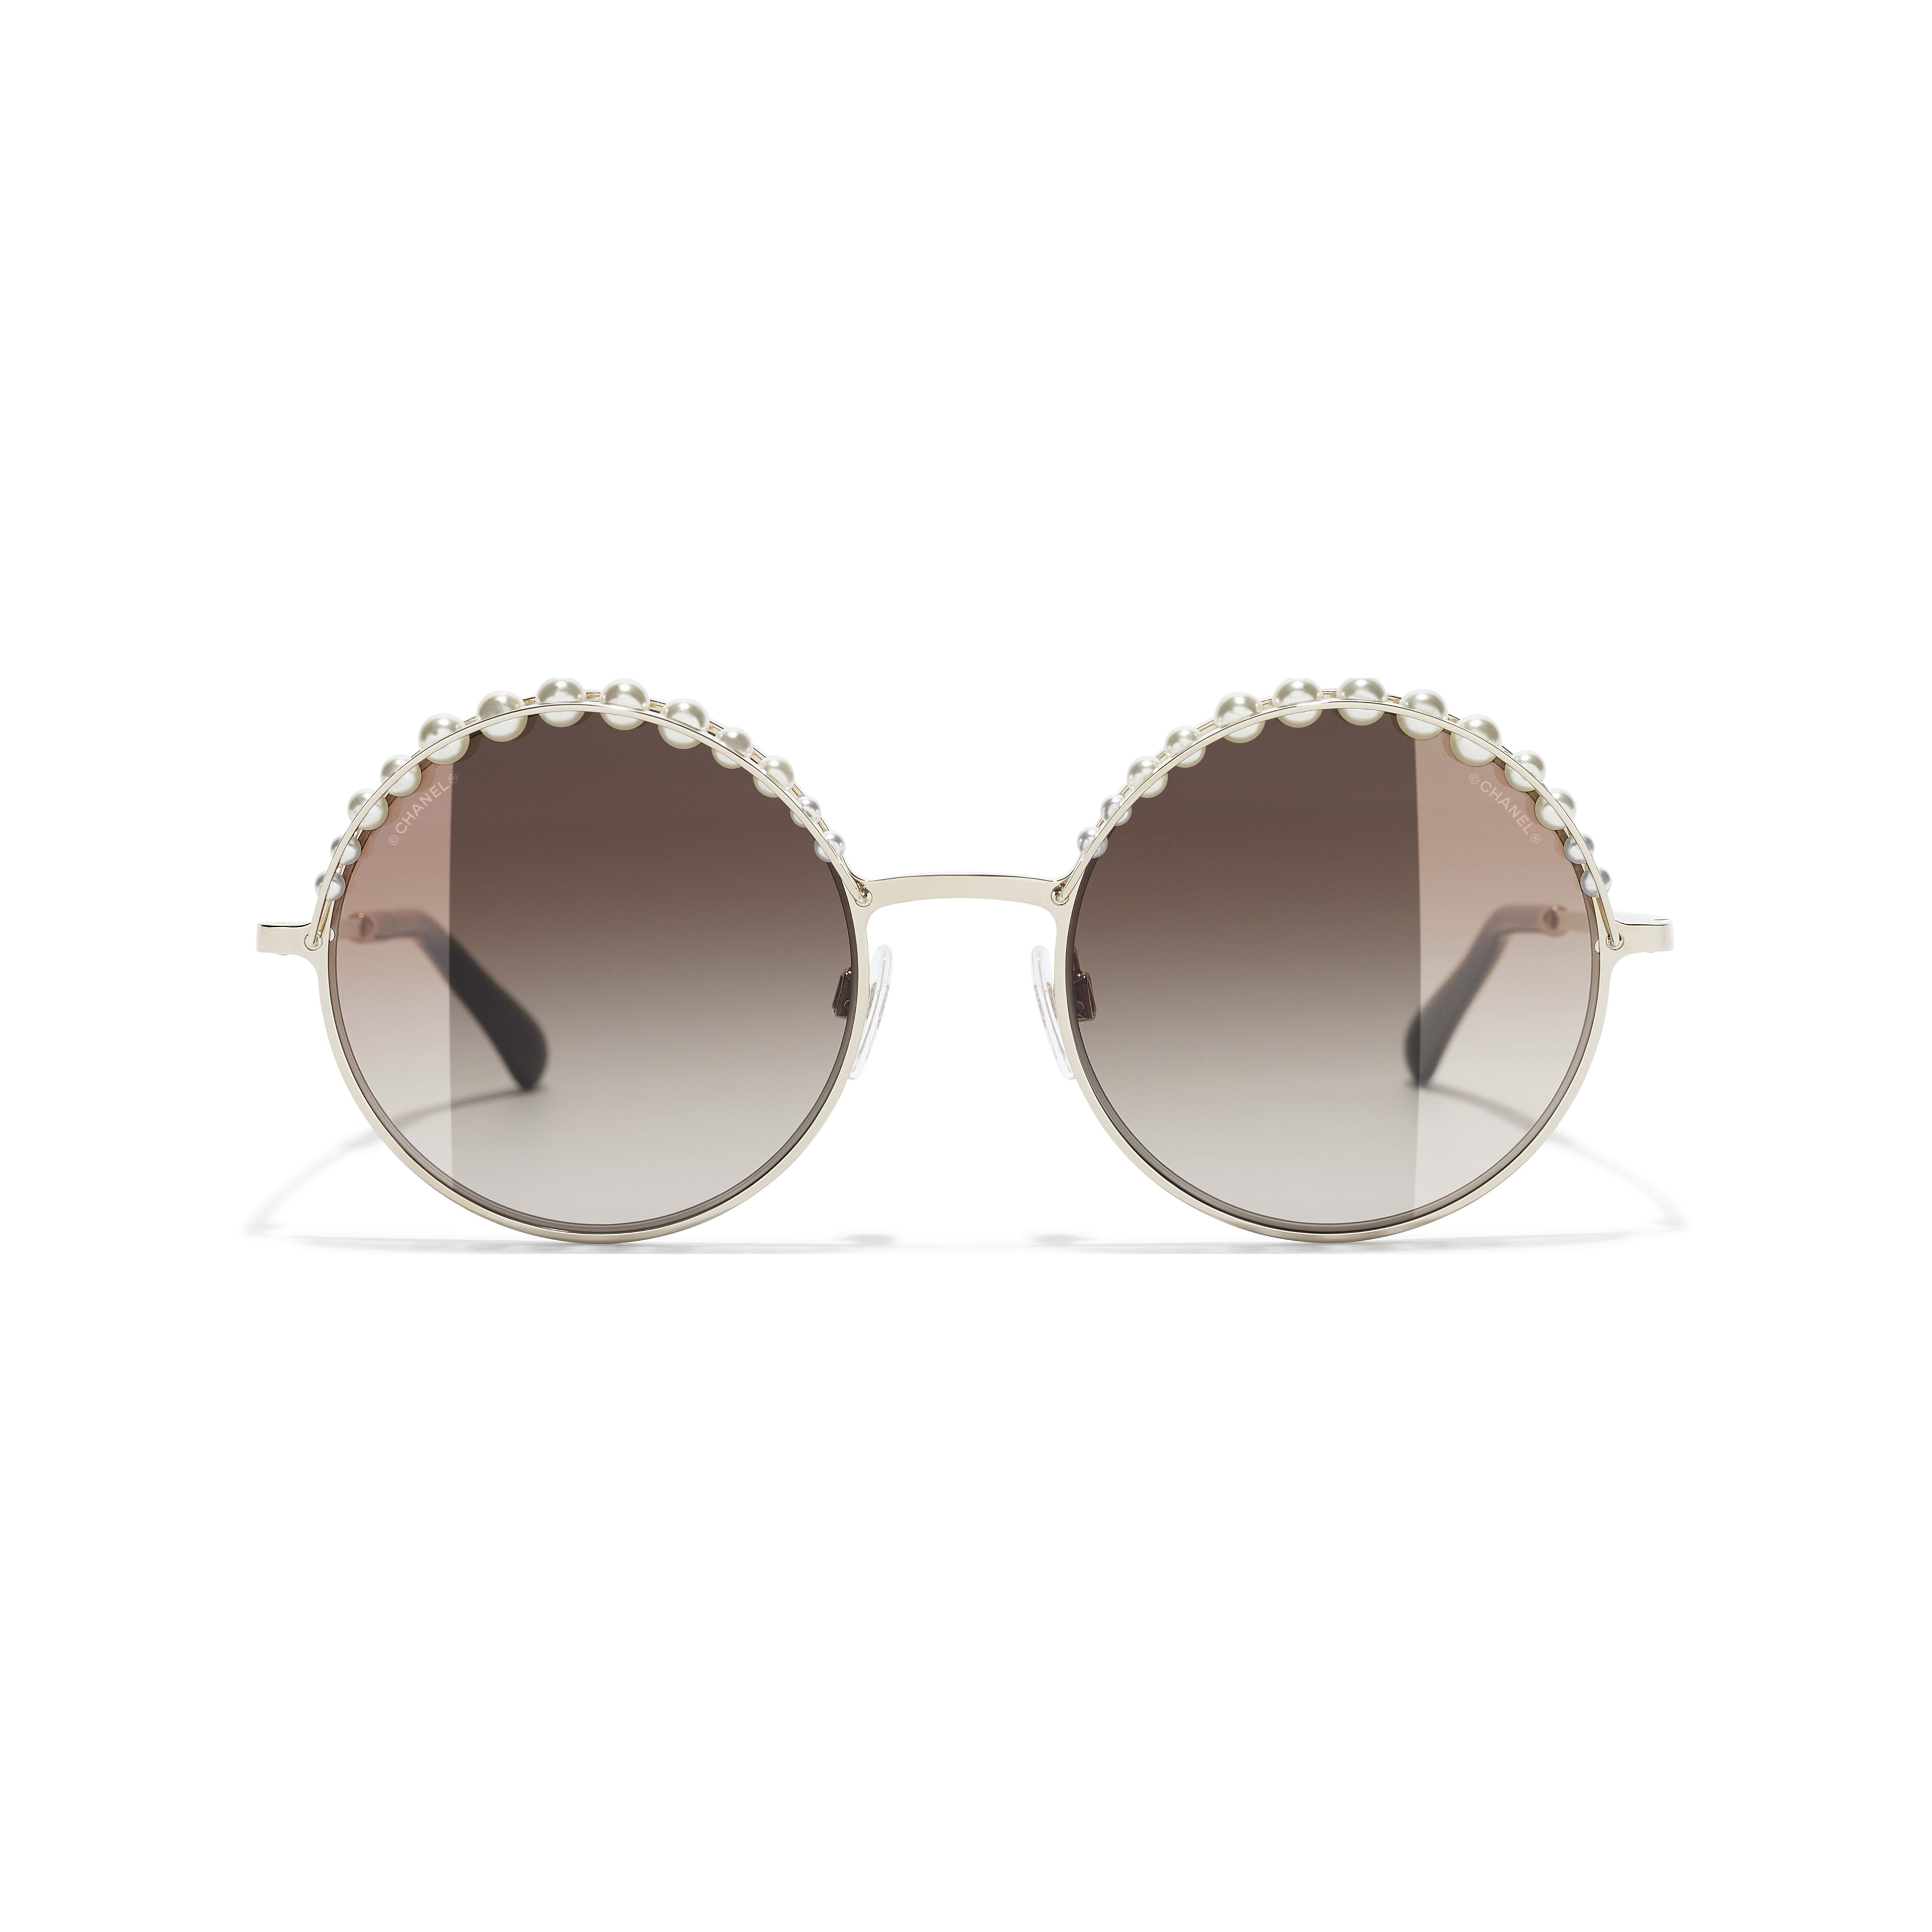 Round Sunglasses - Gold - Metal & Imitation Pearls - Alternative view - see full sized version